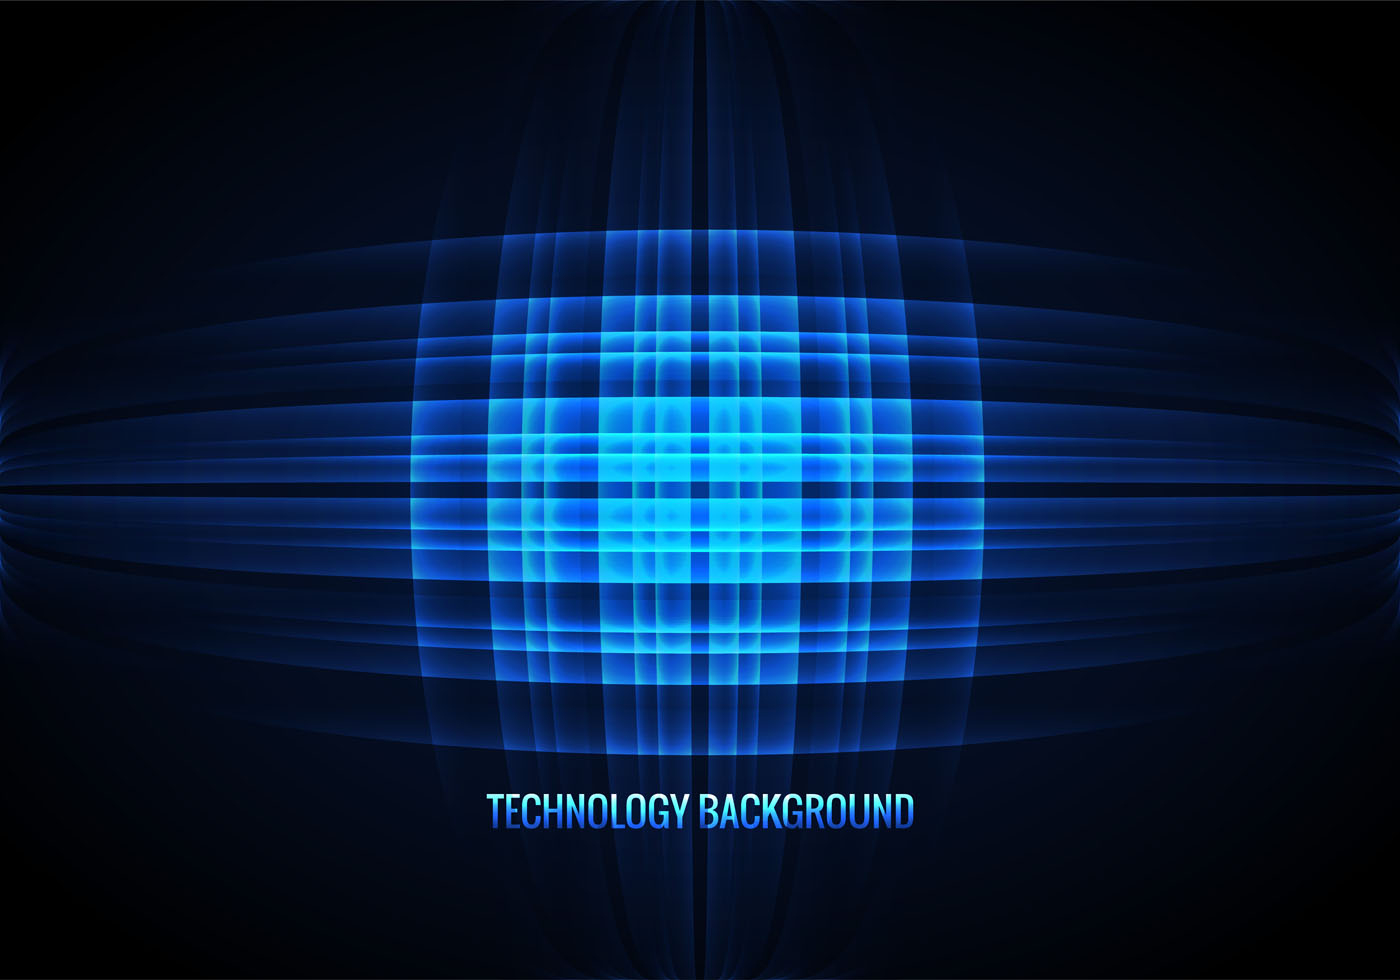 Abstract Technology Wallpaper Group With 78 Items: Vector Technology Background